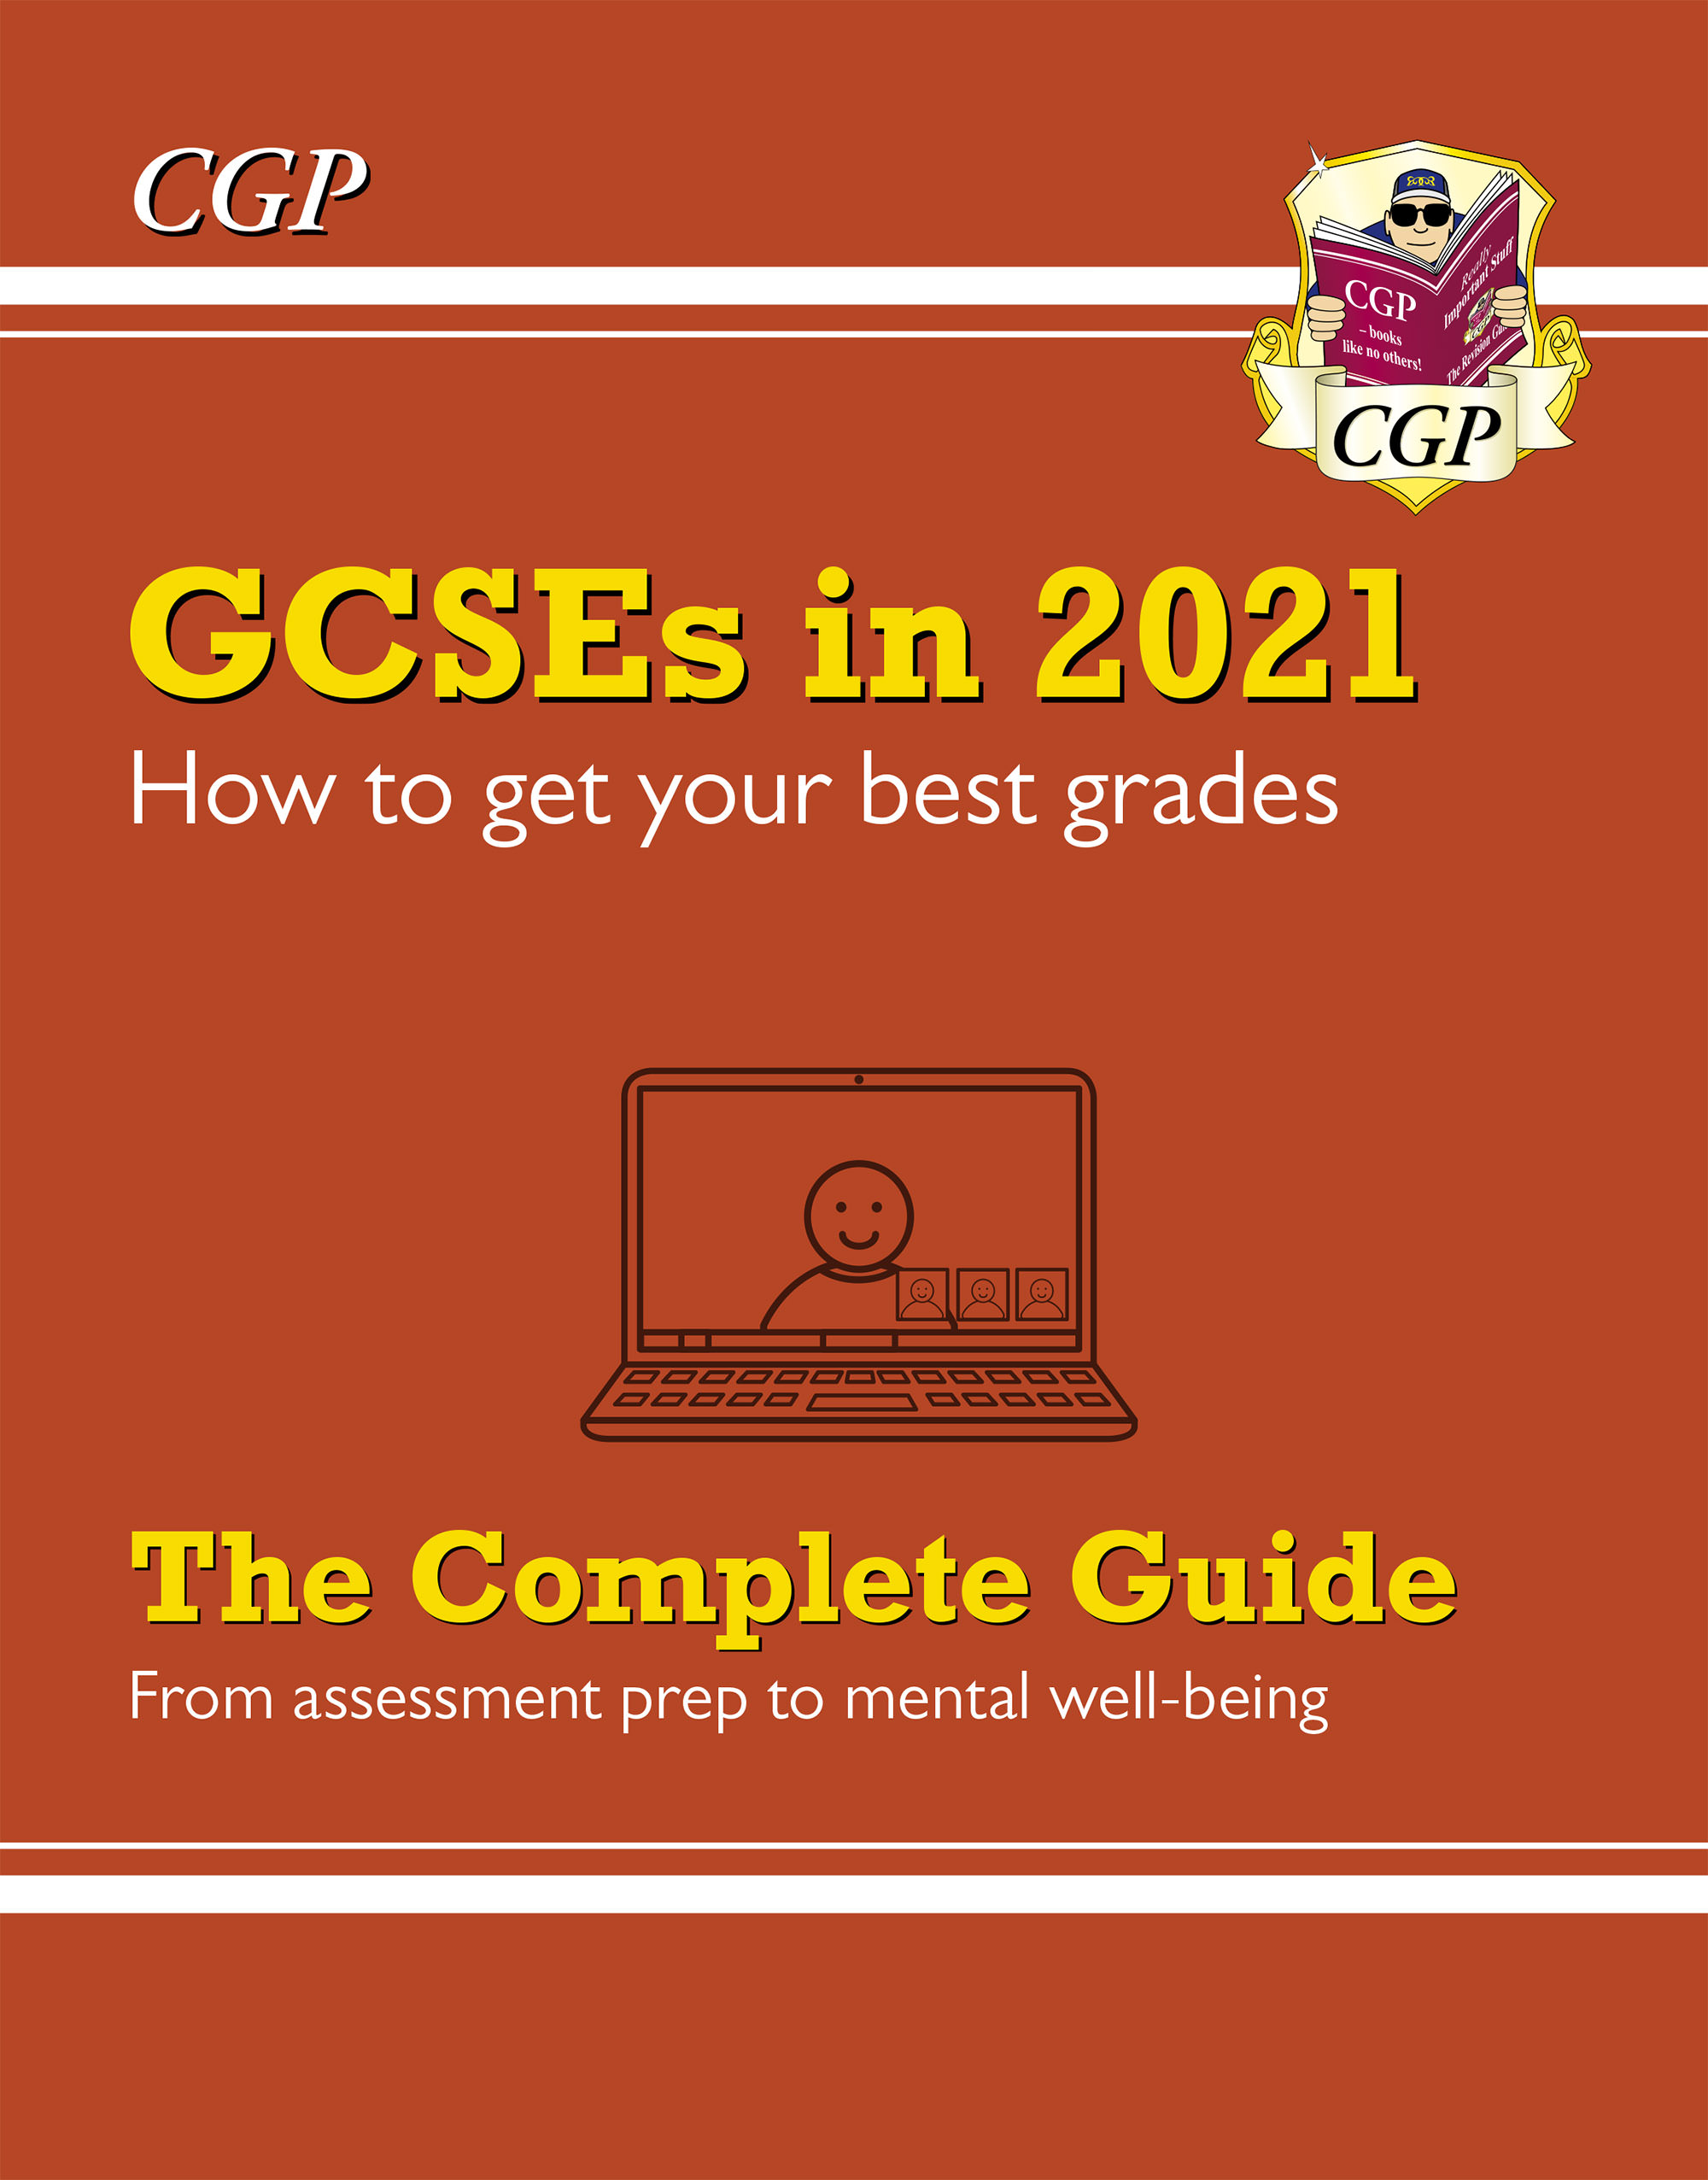 XHBGR41D - GCSEs in 2021: How to get your best grades - The Complete Guide Online Edition